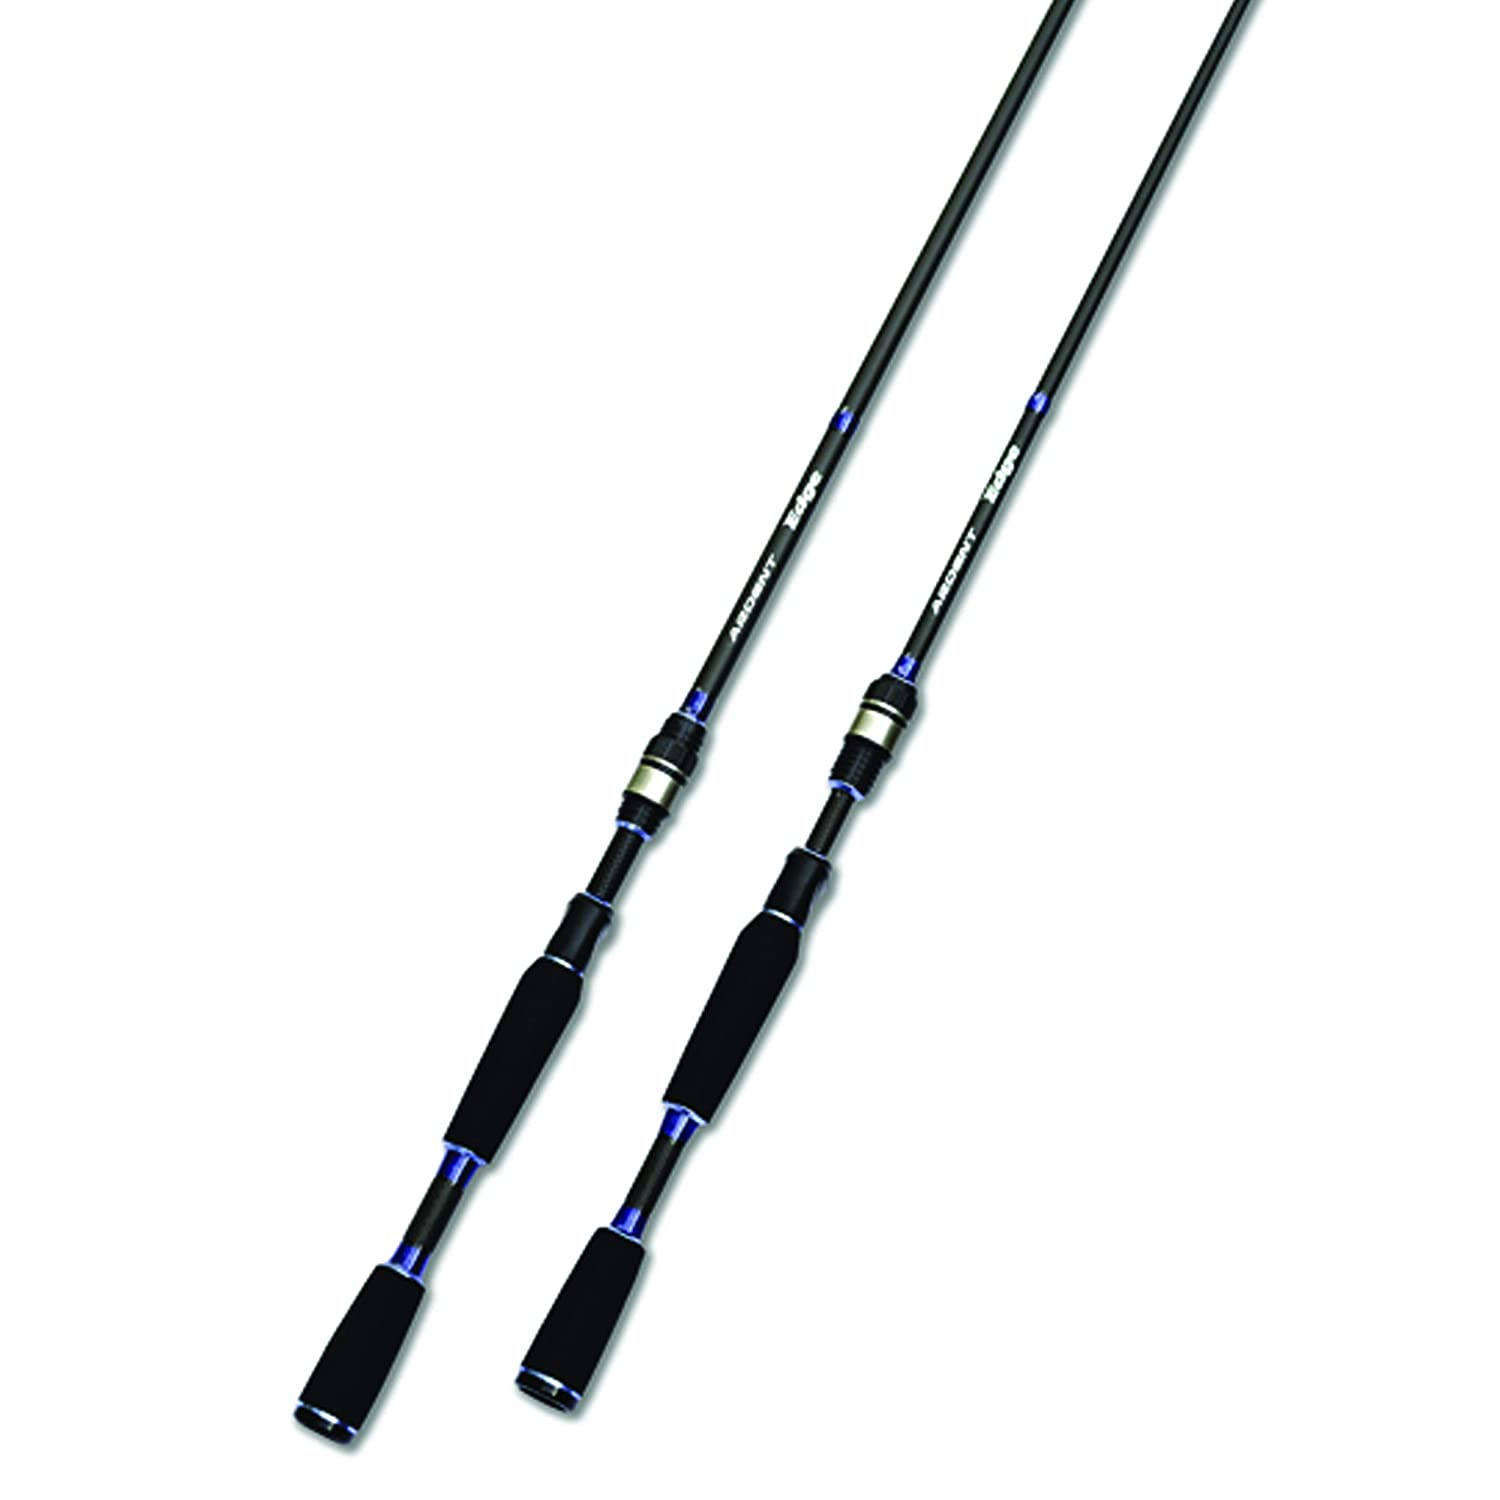 Ardent Edge Spinning Rod